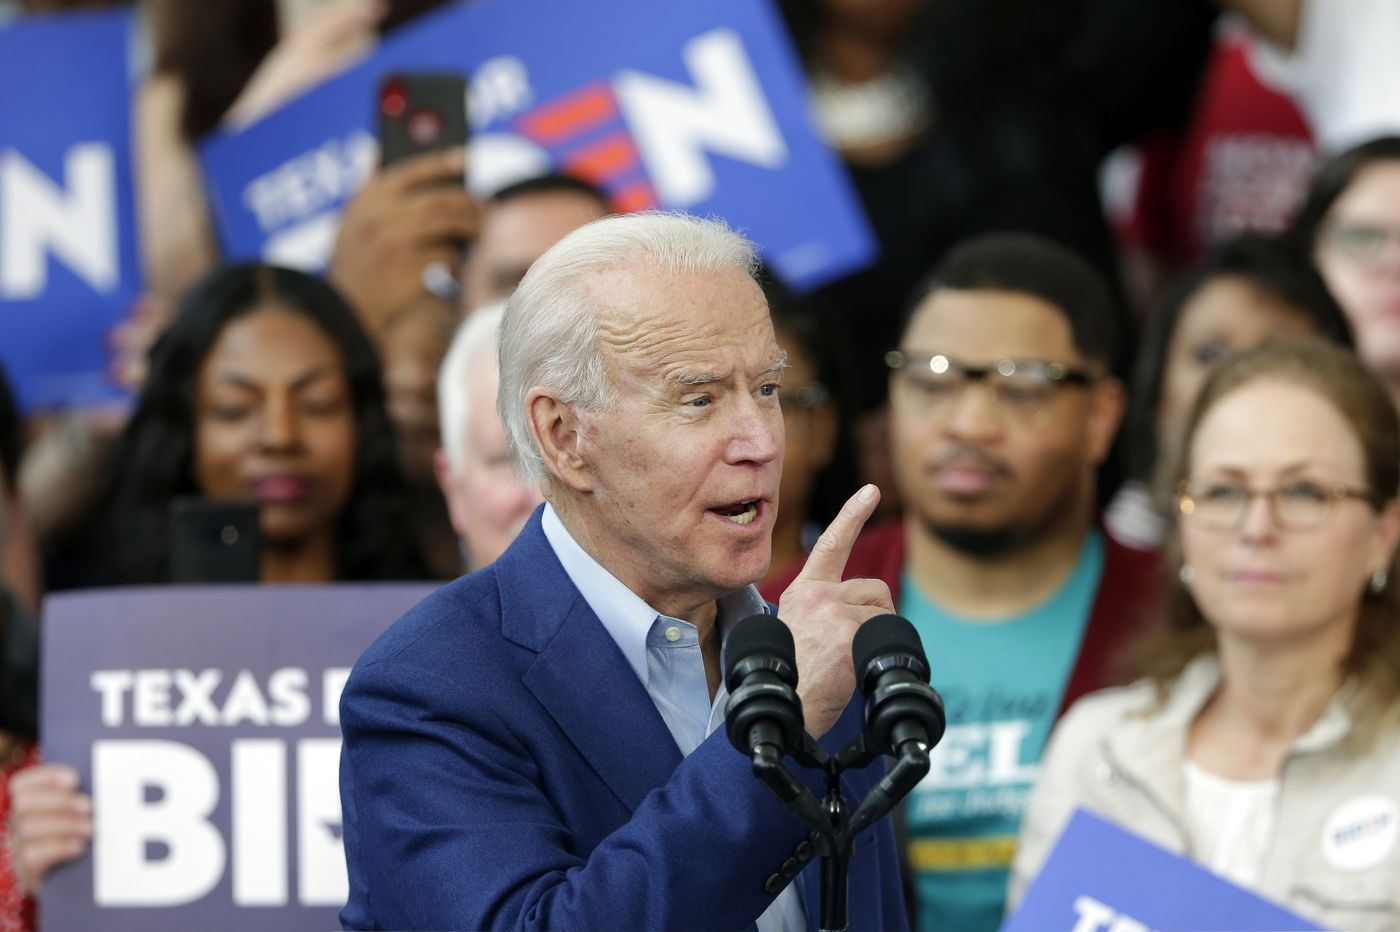 Democrats are dropping out and backing Joe Biden. But he faces a tougher test on Super Tuesday.